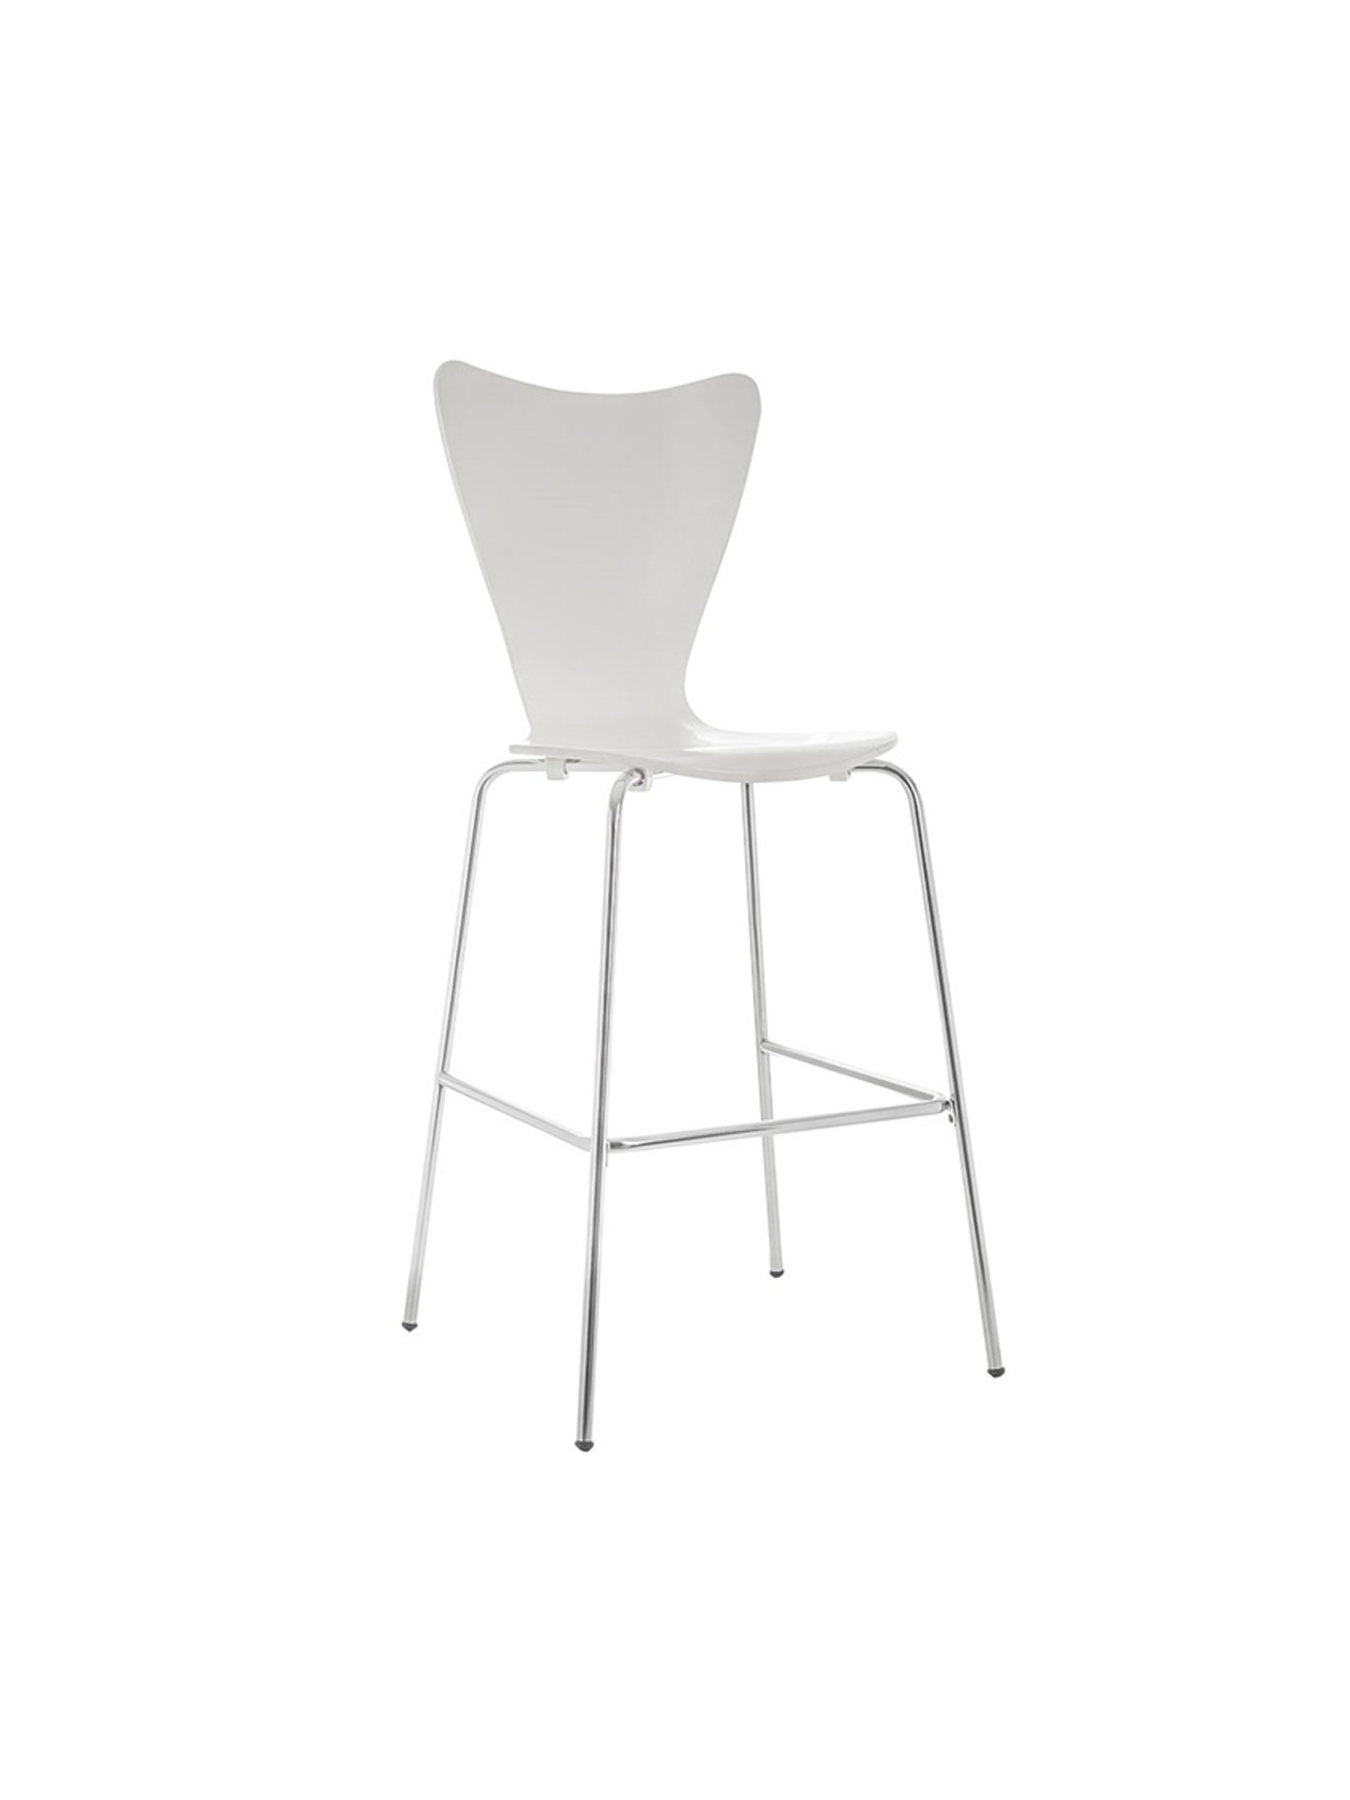 Pack Of 4 Stools With Structure Chrome Rod Footstool-wooden Seat White Color PIQUERAS & CURLED Mode